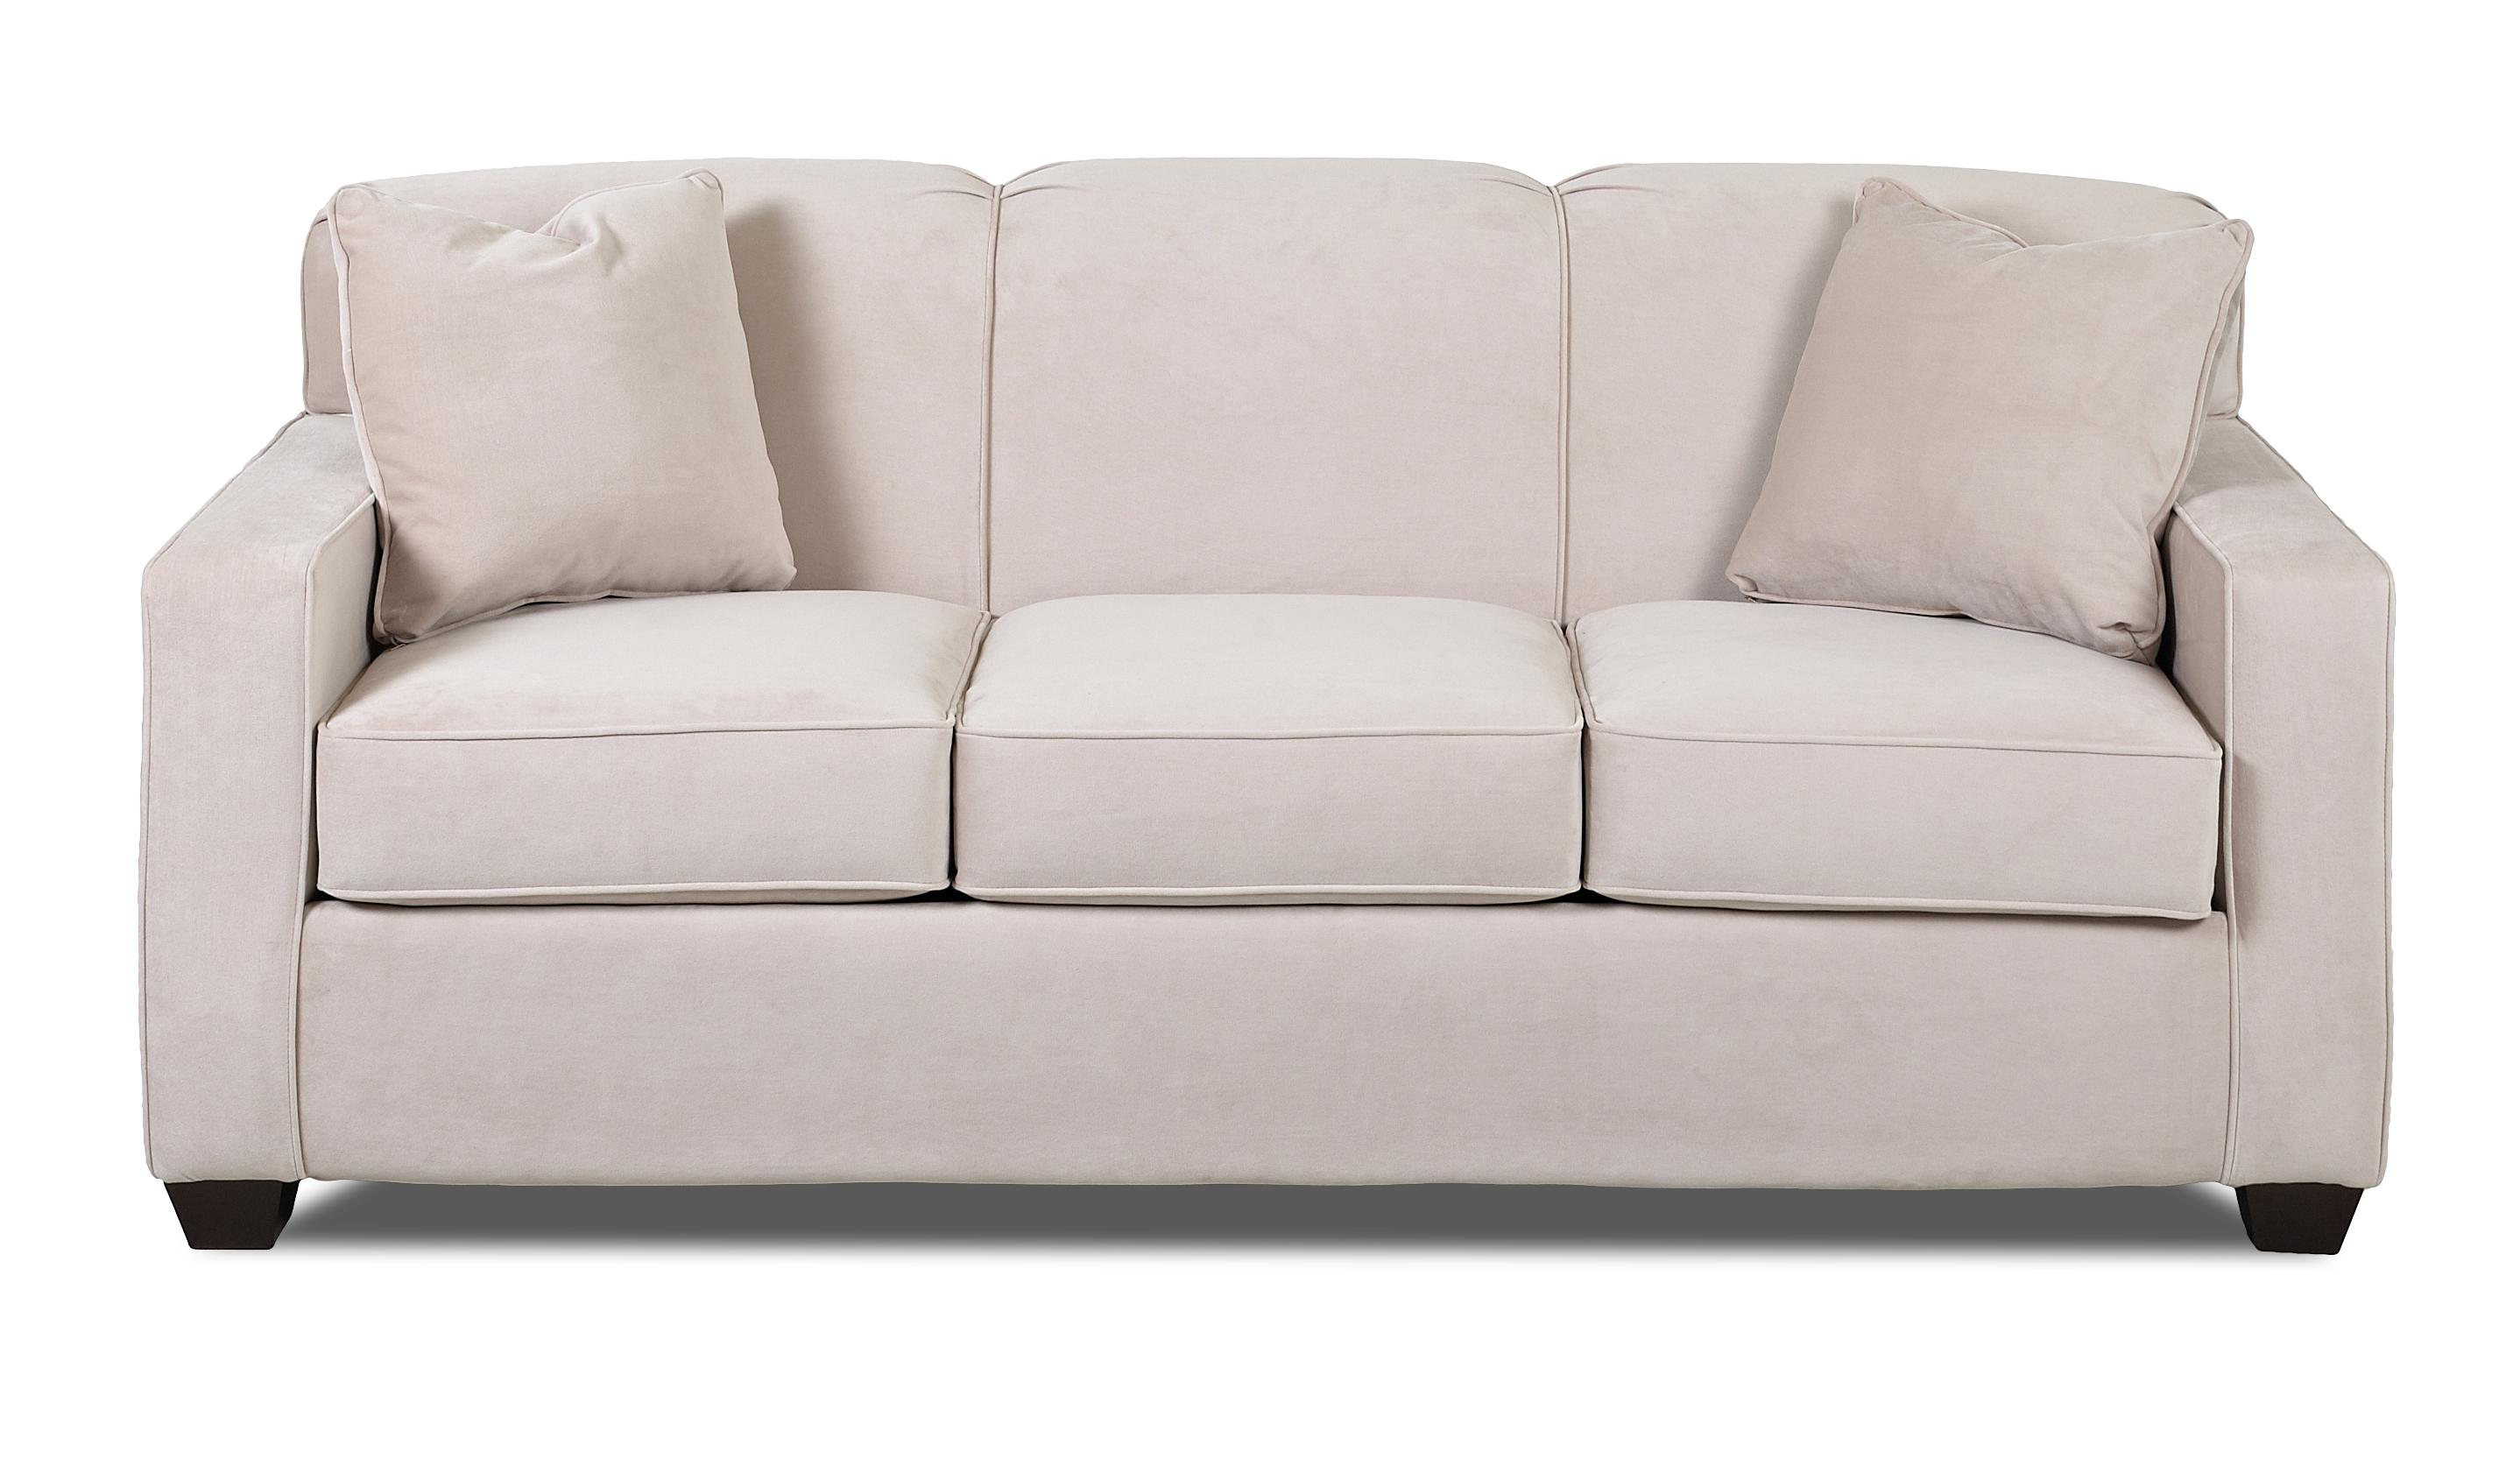 queen sofa bed no arms white leather design ideas contemporary innerspring sleeper with tight